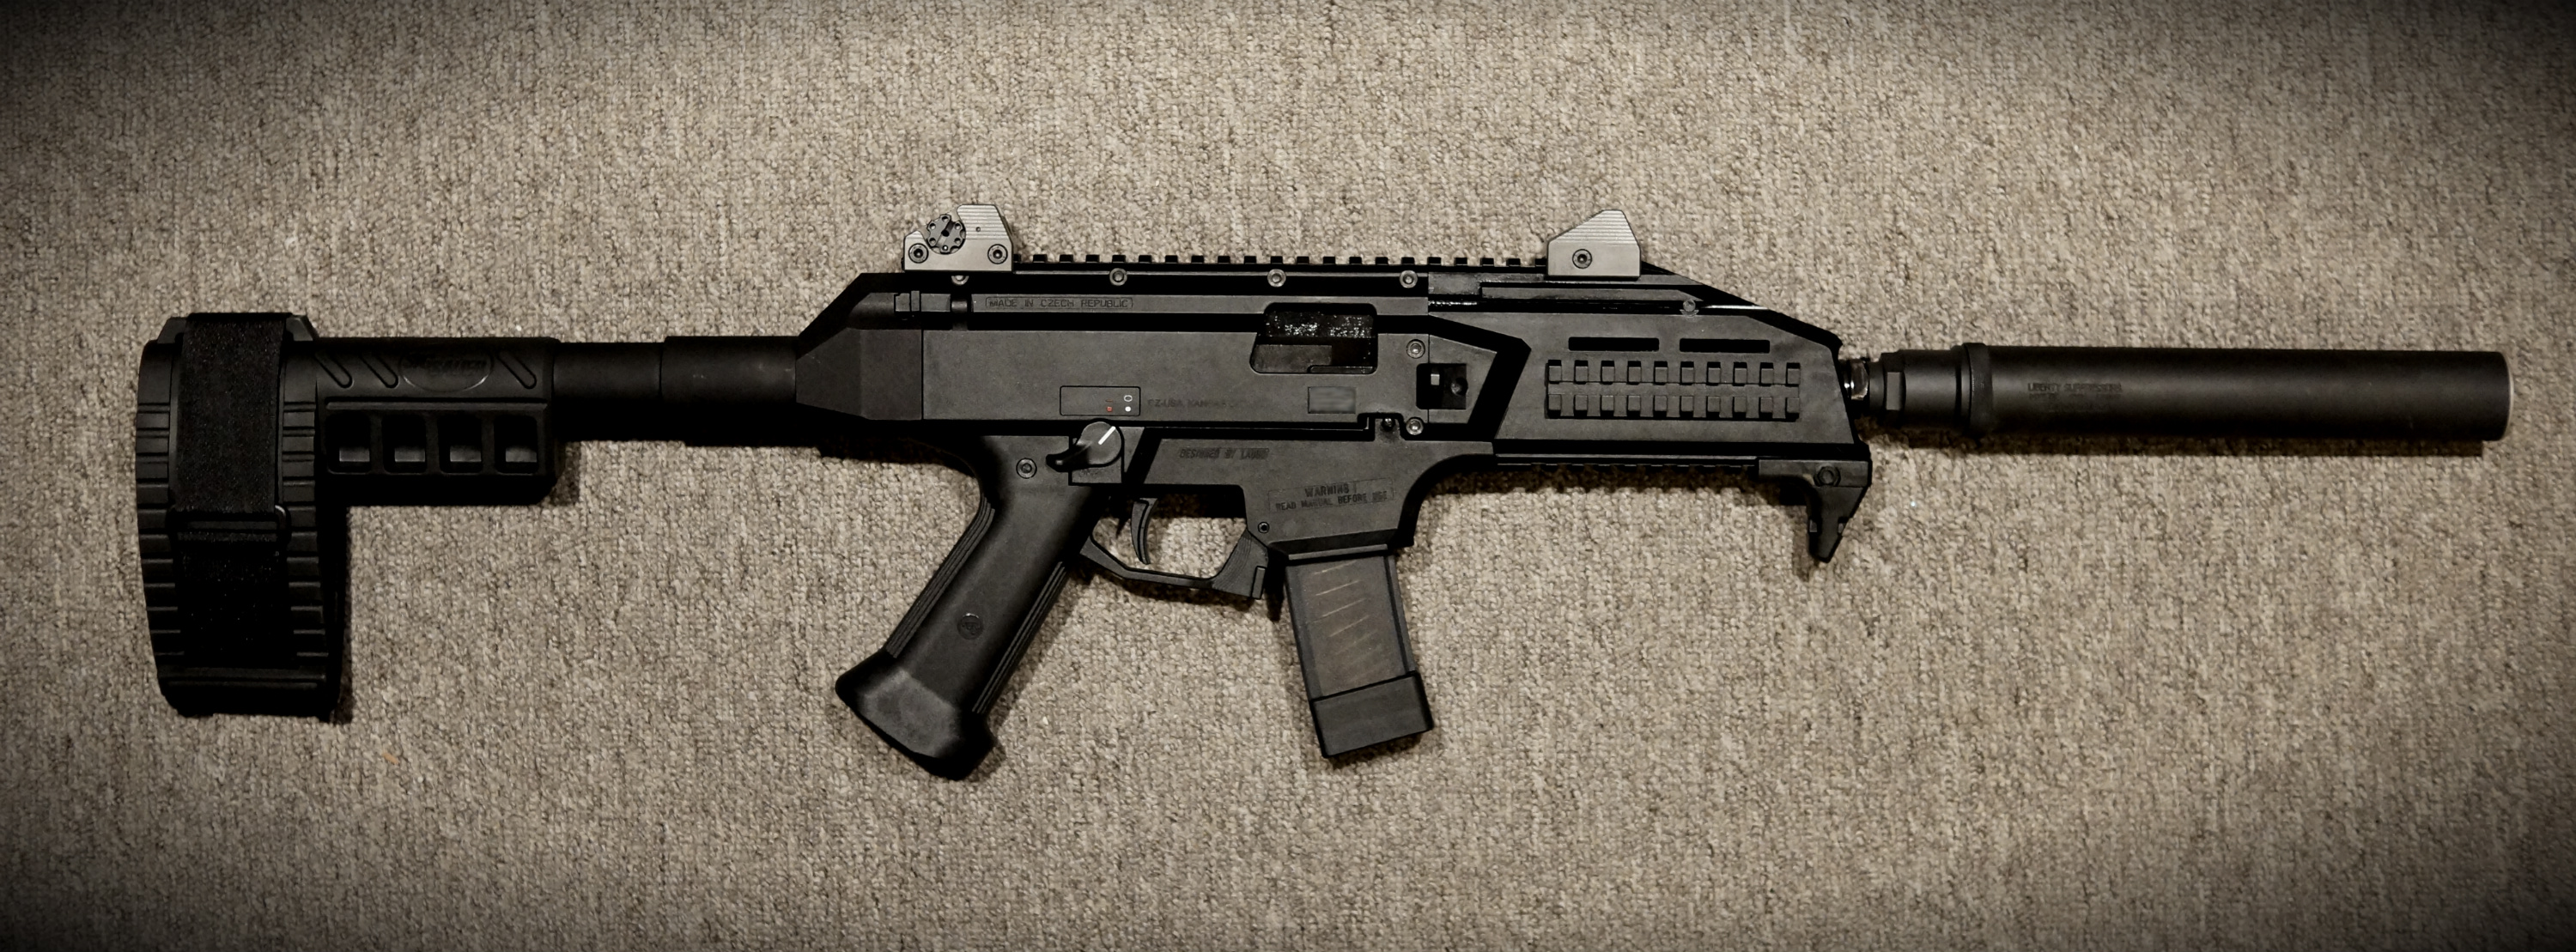 cz scorpion evo 3 s1 review